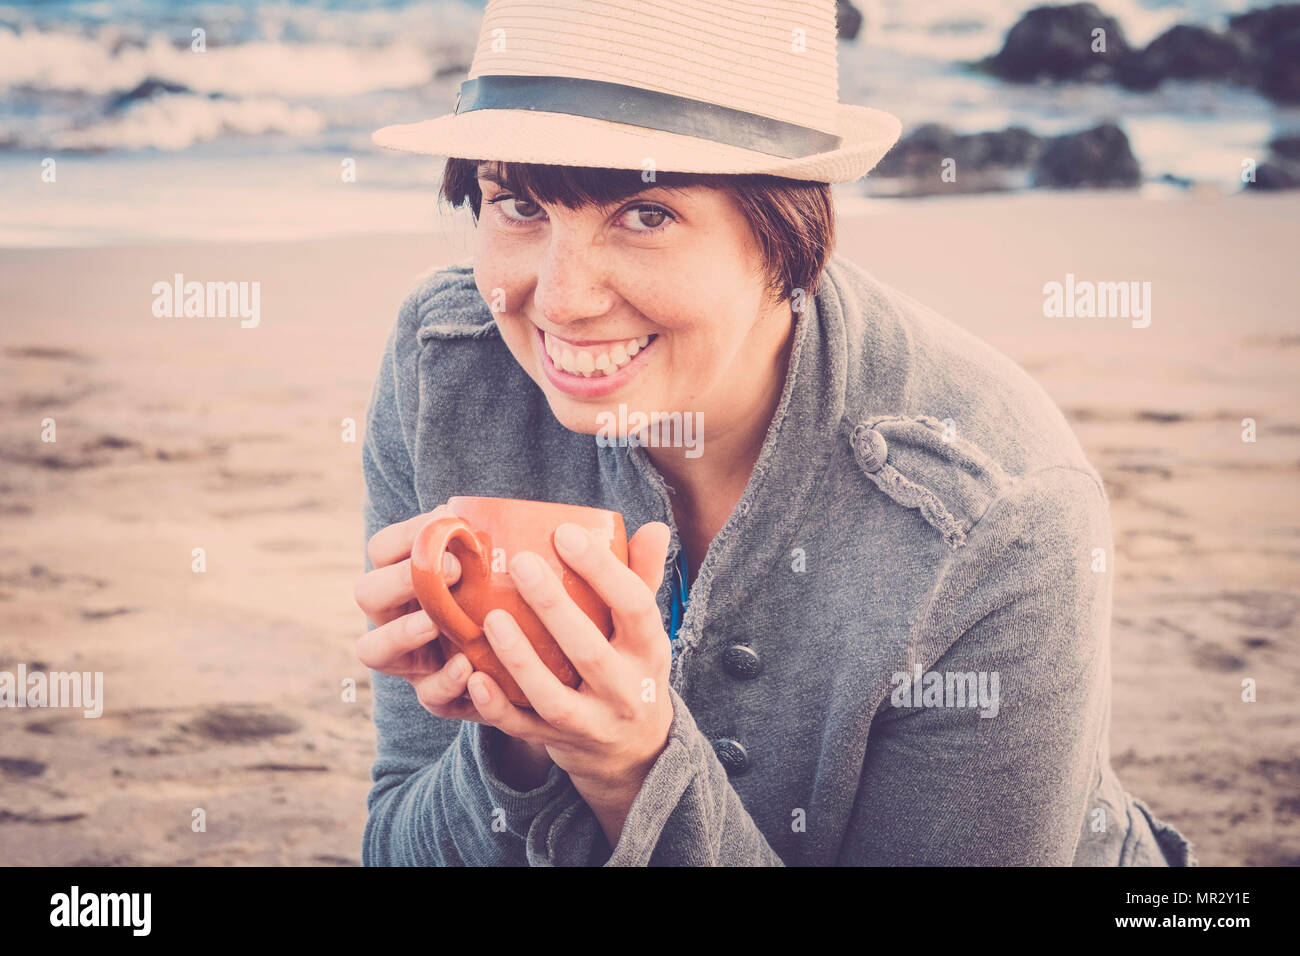 nice smiling young woman sit down at the beach with ocean in background. drinking a cup of tea or coffee for a leisure activity relalxed and connected - Stock Image